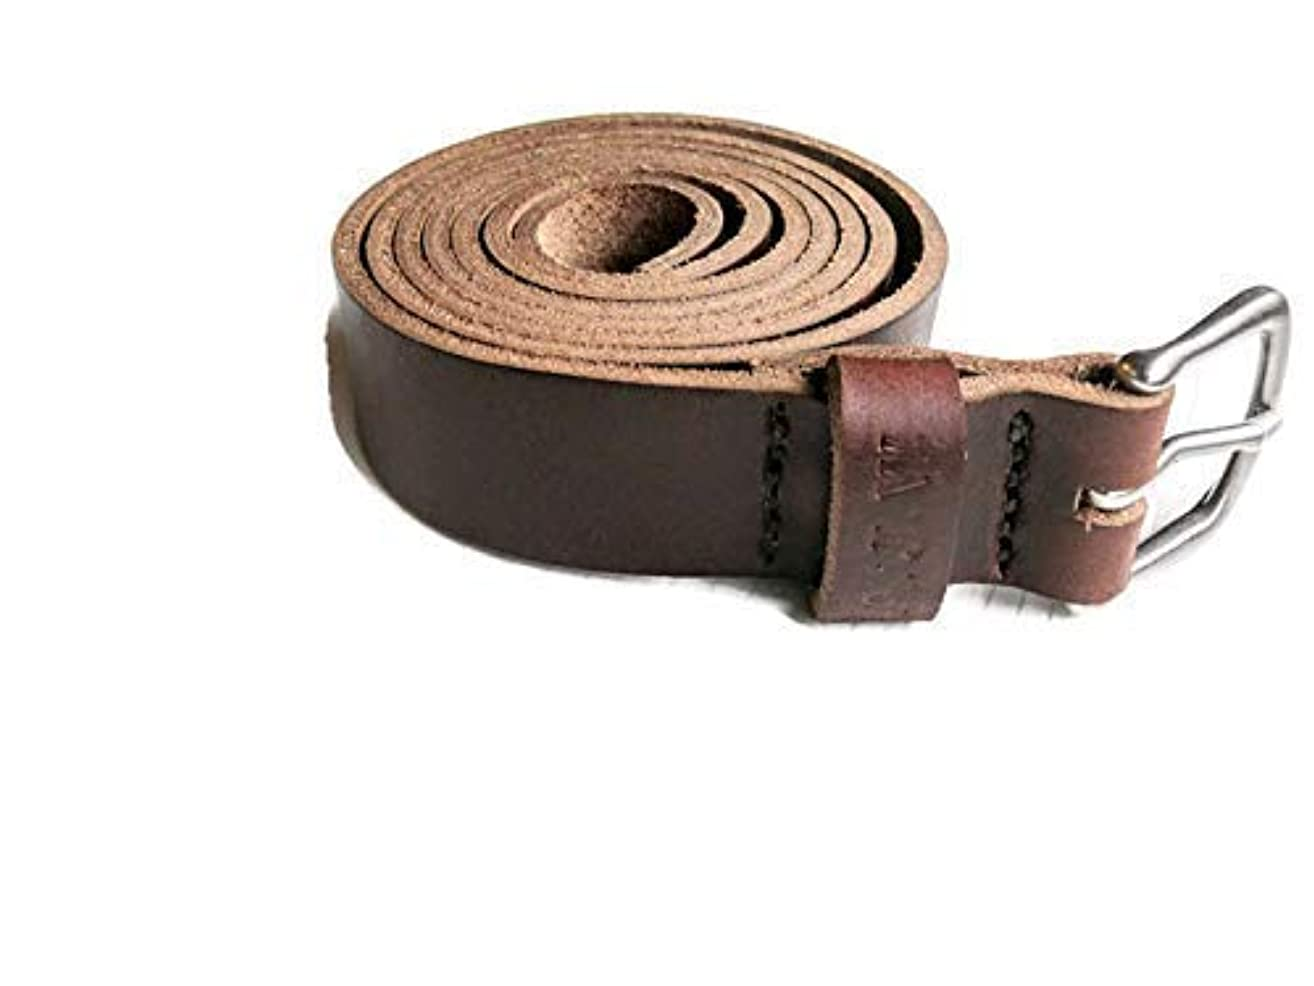 Handcrafted Horween Belt, Best Gift for Him, Leather Men's Belt, Genuine Full Grain Leather | Personalized Belt | Handstamped Gift